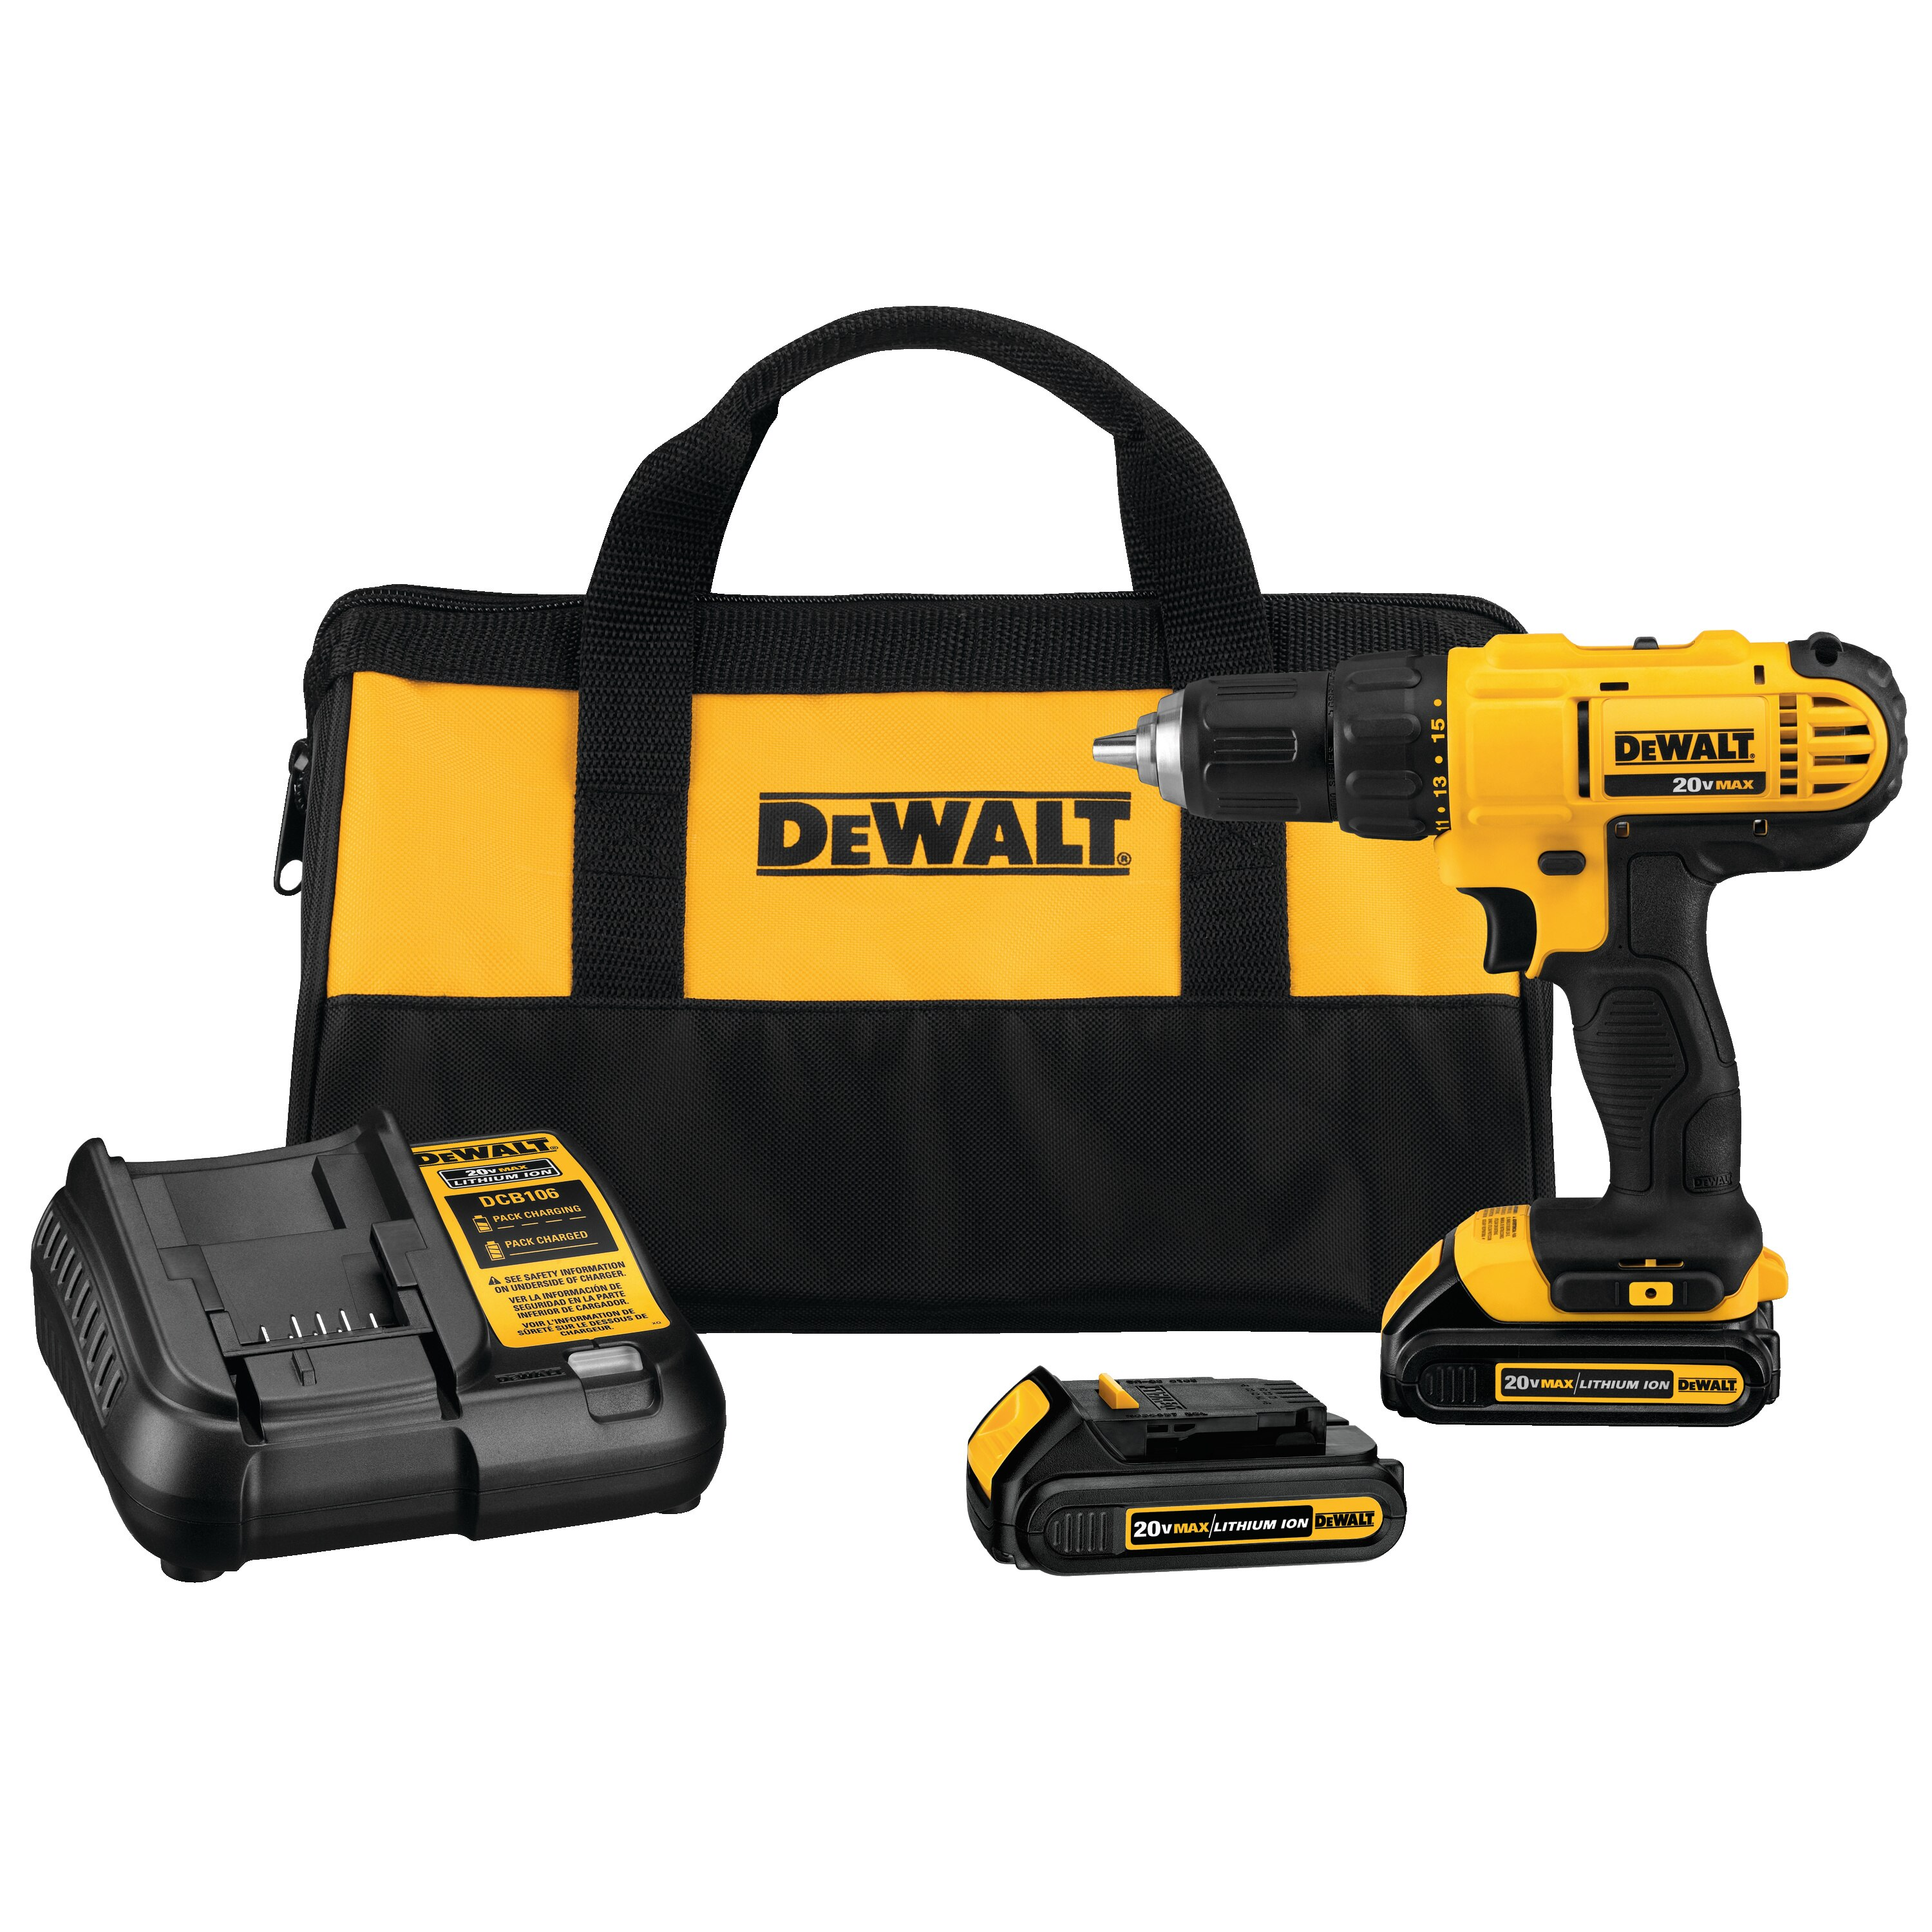 20V MAX* Lithium Ion Compact Drill/Driver Kit